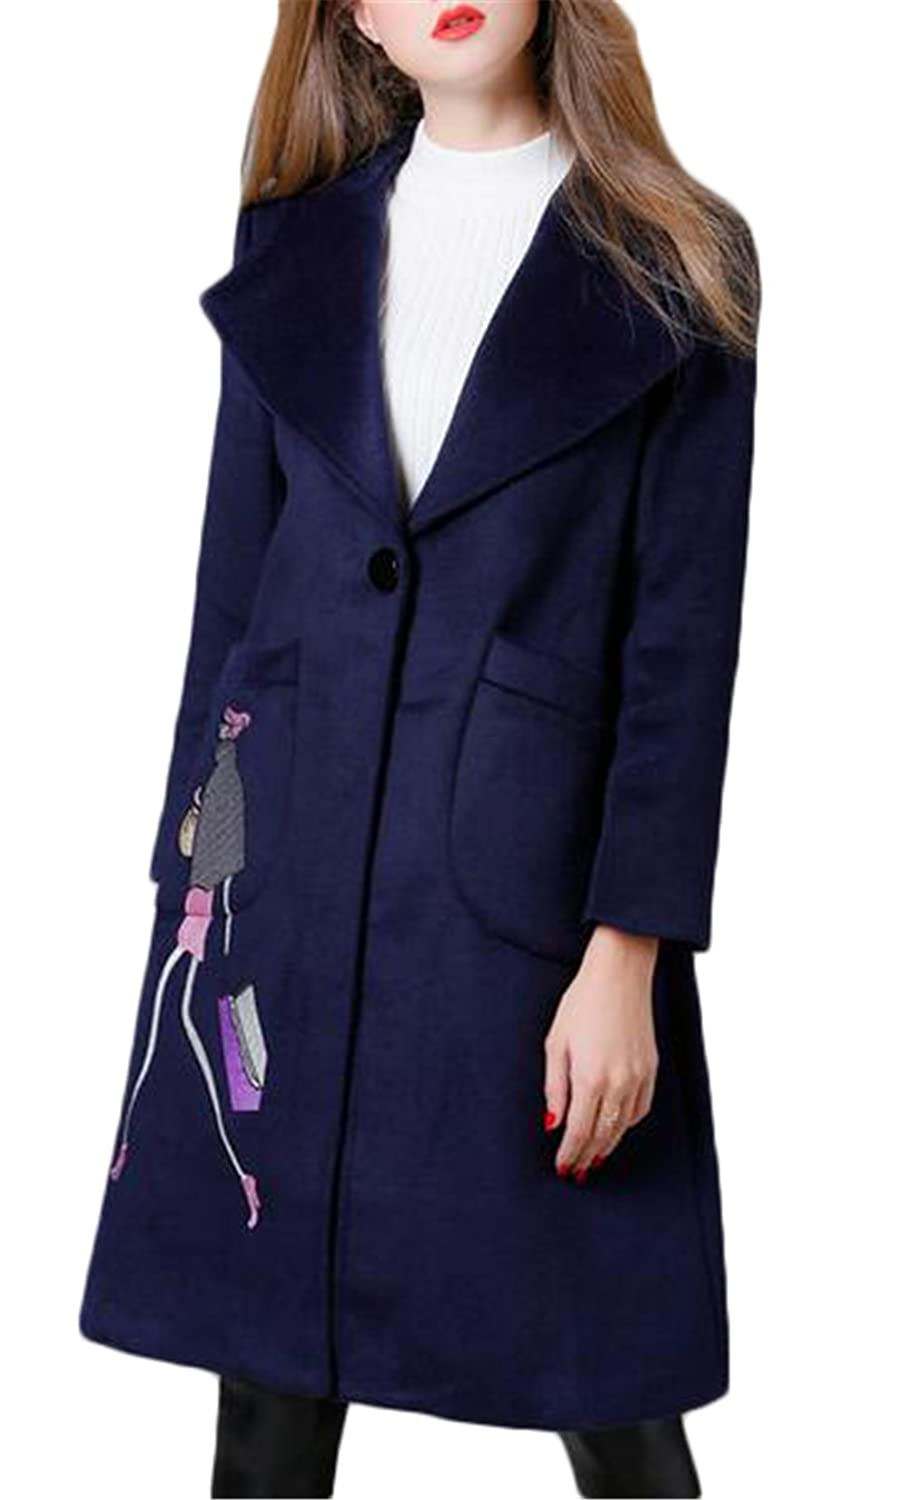 Women's Fashion Embroidery Outerwear Long Wool Jacket Coat